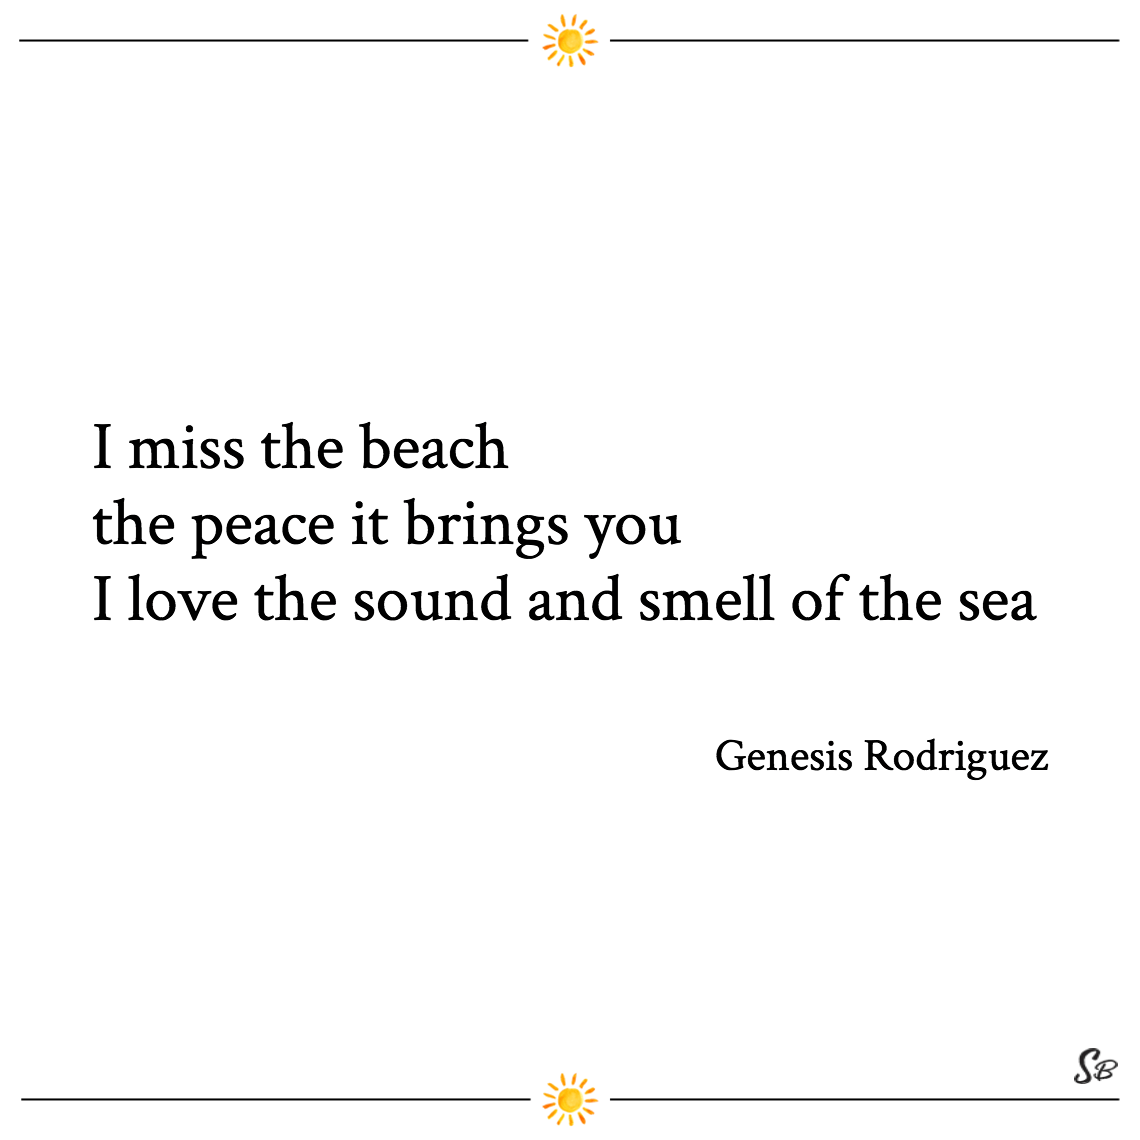 I miss the beach the peace it brings you i love the sound and smell of the sea genesis rodriguez